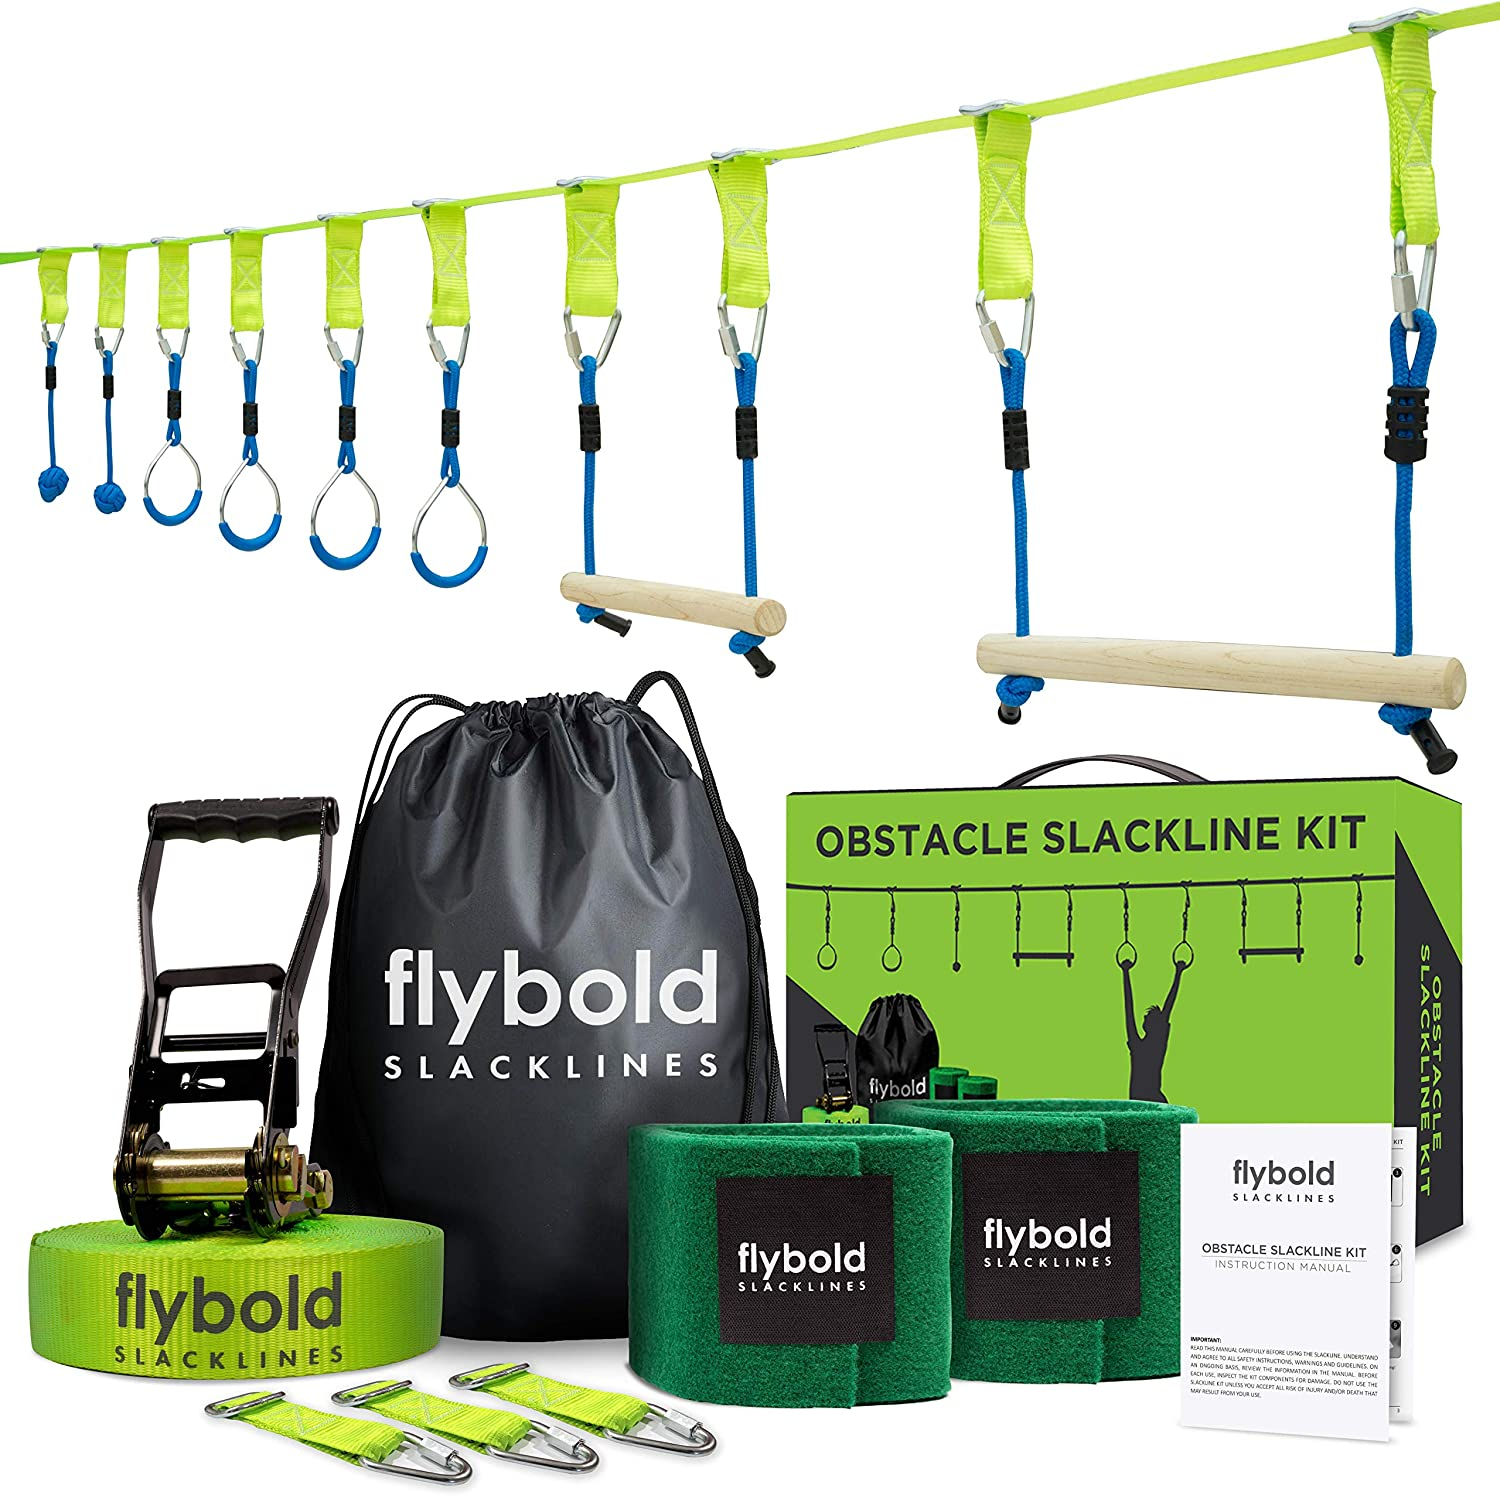 Ninja Obstacle Course Line Kit 40 Slackline 8 Hanging Obstacles with Adjustable Buckles Tree Protectors Instruction Booklet Carry Bag Capacity 300lbs ...